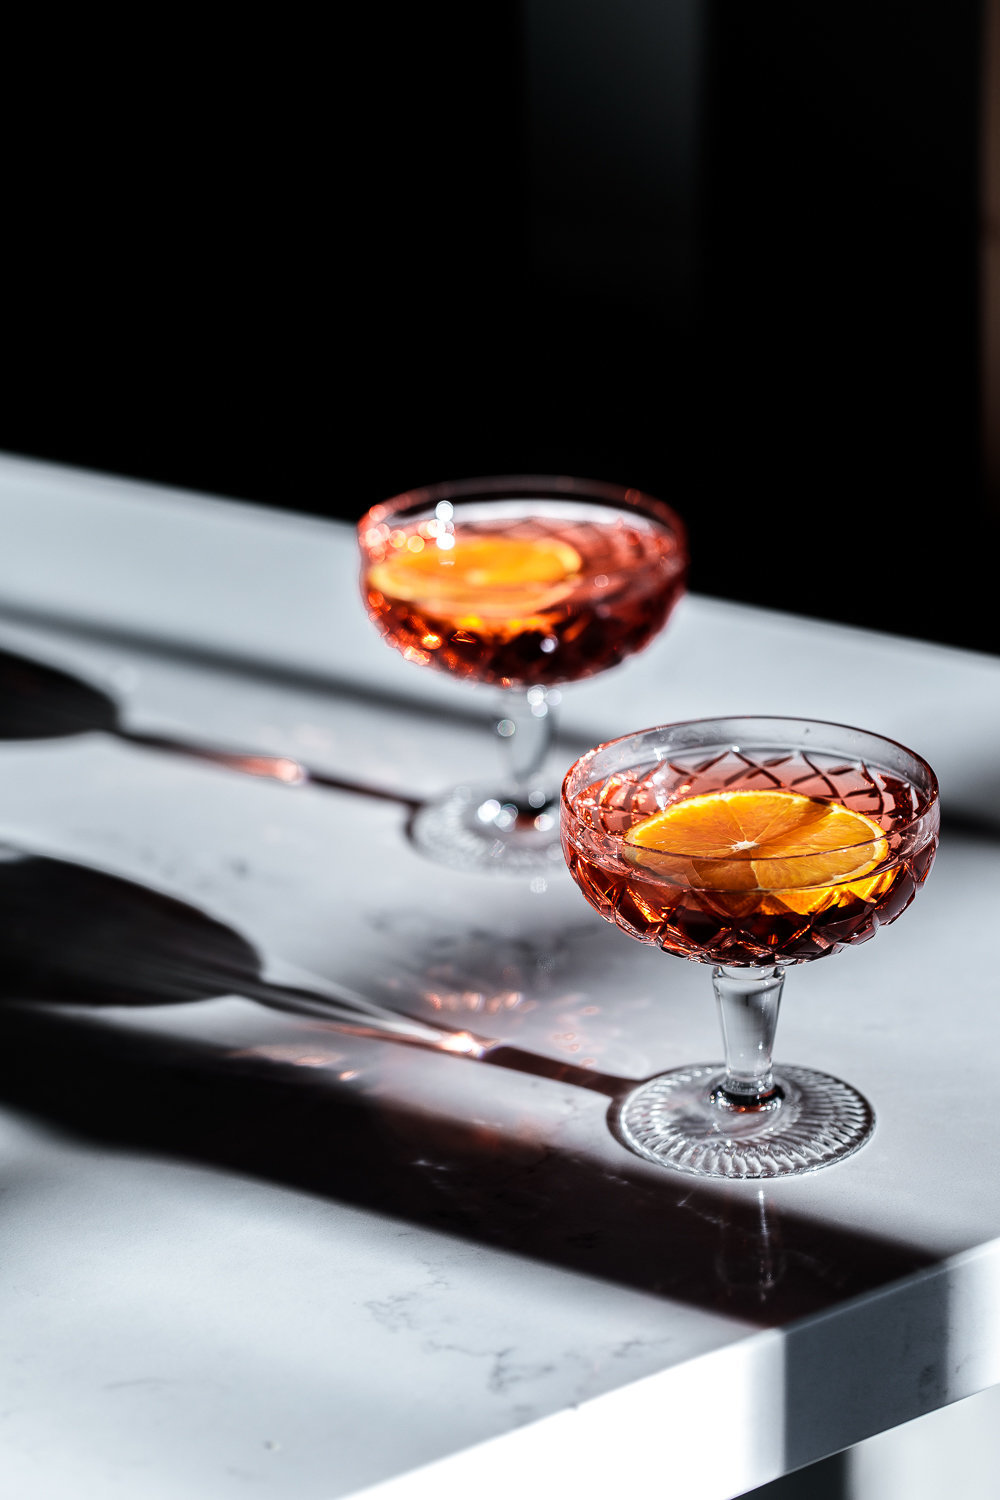 Negroni Shadow Play - Anisa Sabet - The Macadames - Food Travel Lifestyle Photographer-178